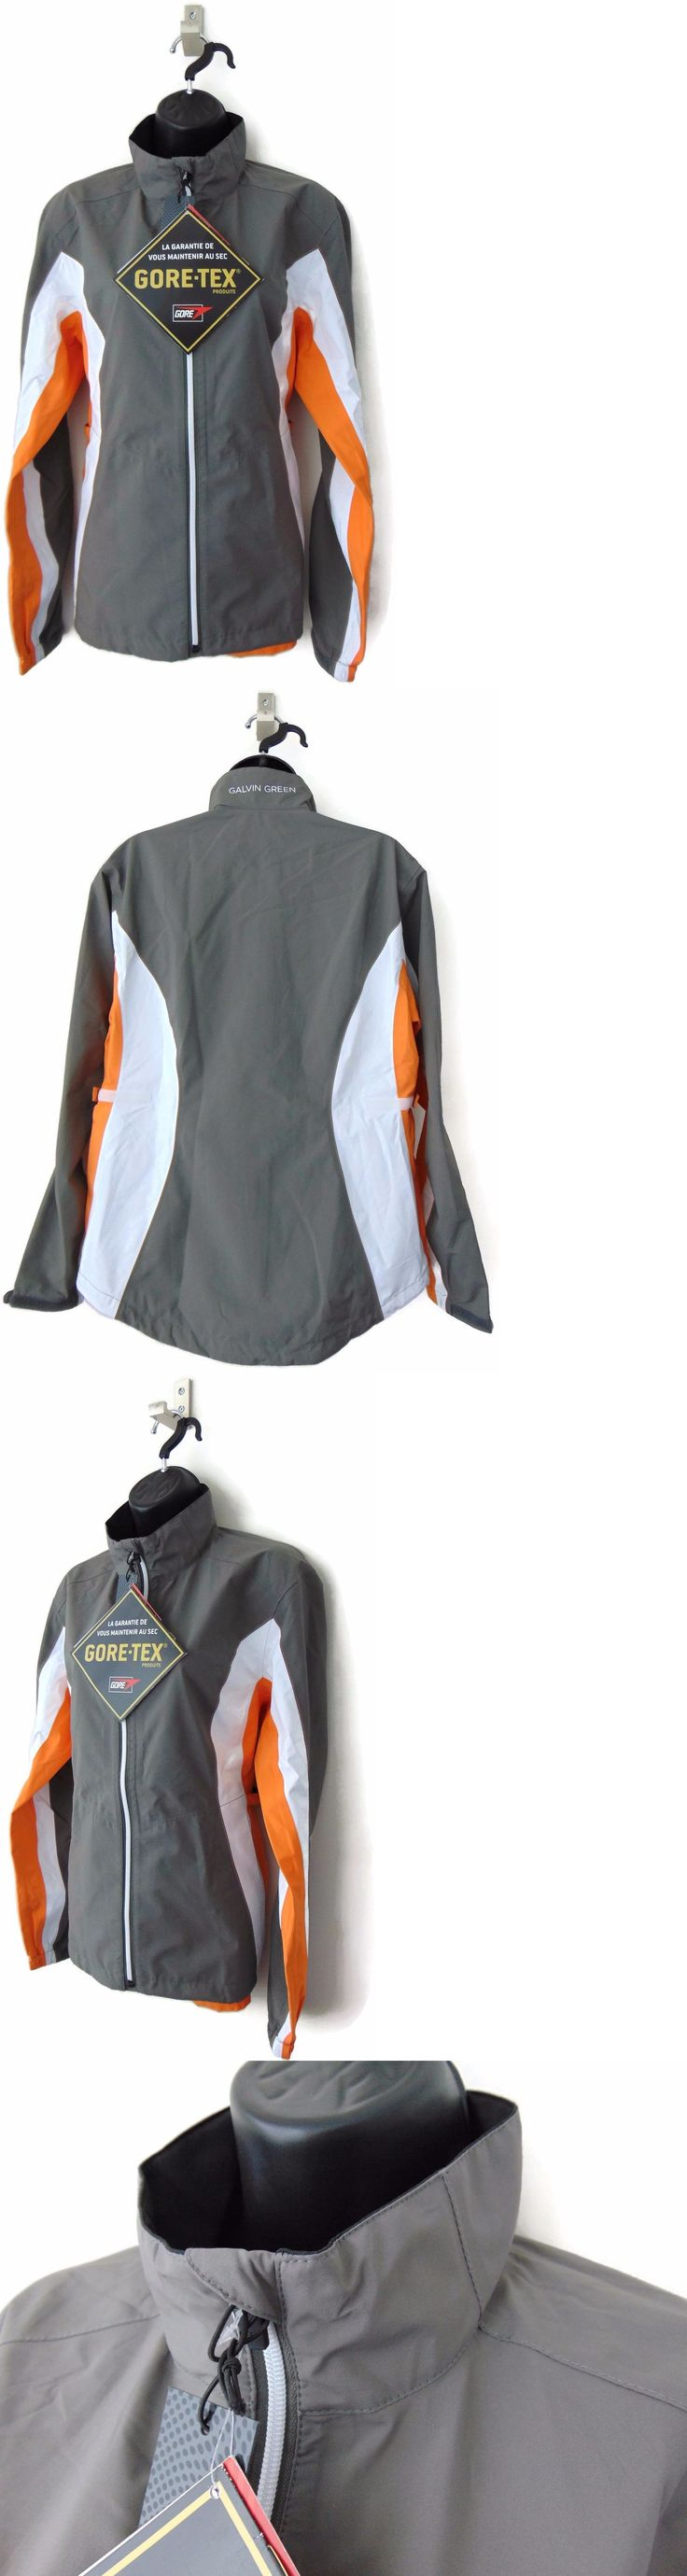 Coats and Jackets 181145: Galvin Green New Women S Small Anya Gore-Tex Waterproof Gray Golf Rain Jacket -> BUY IT NOW ONLY: $189 on eBay!